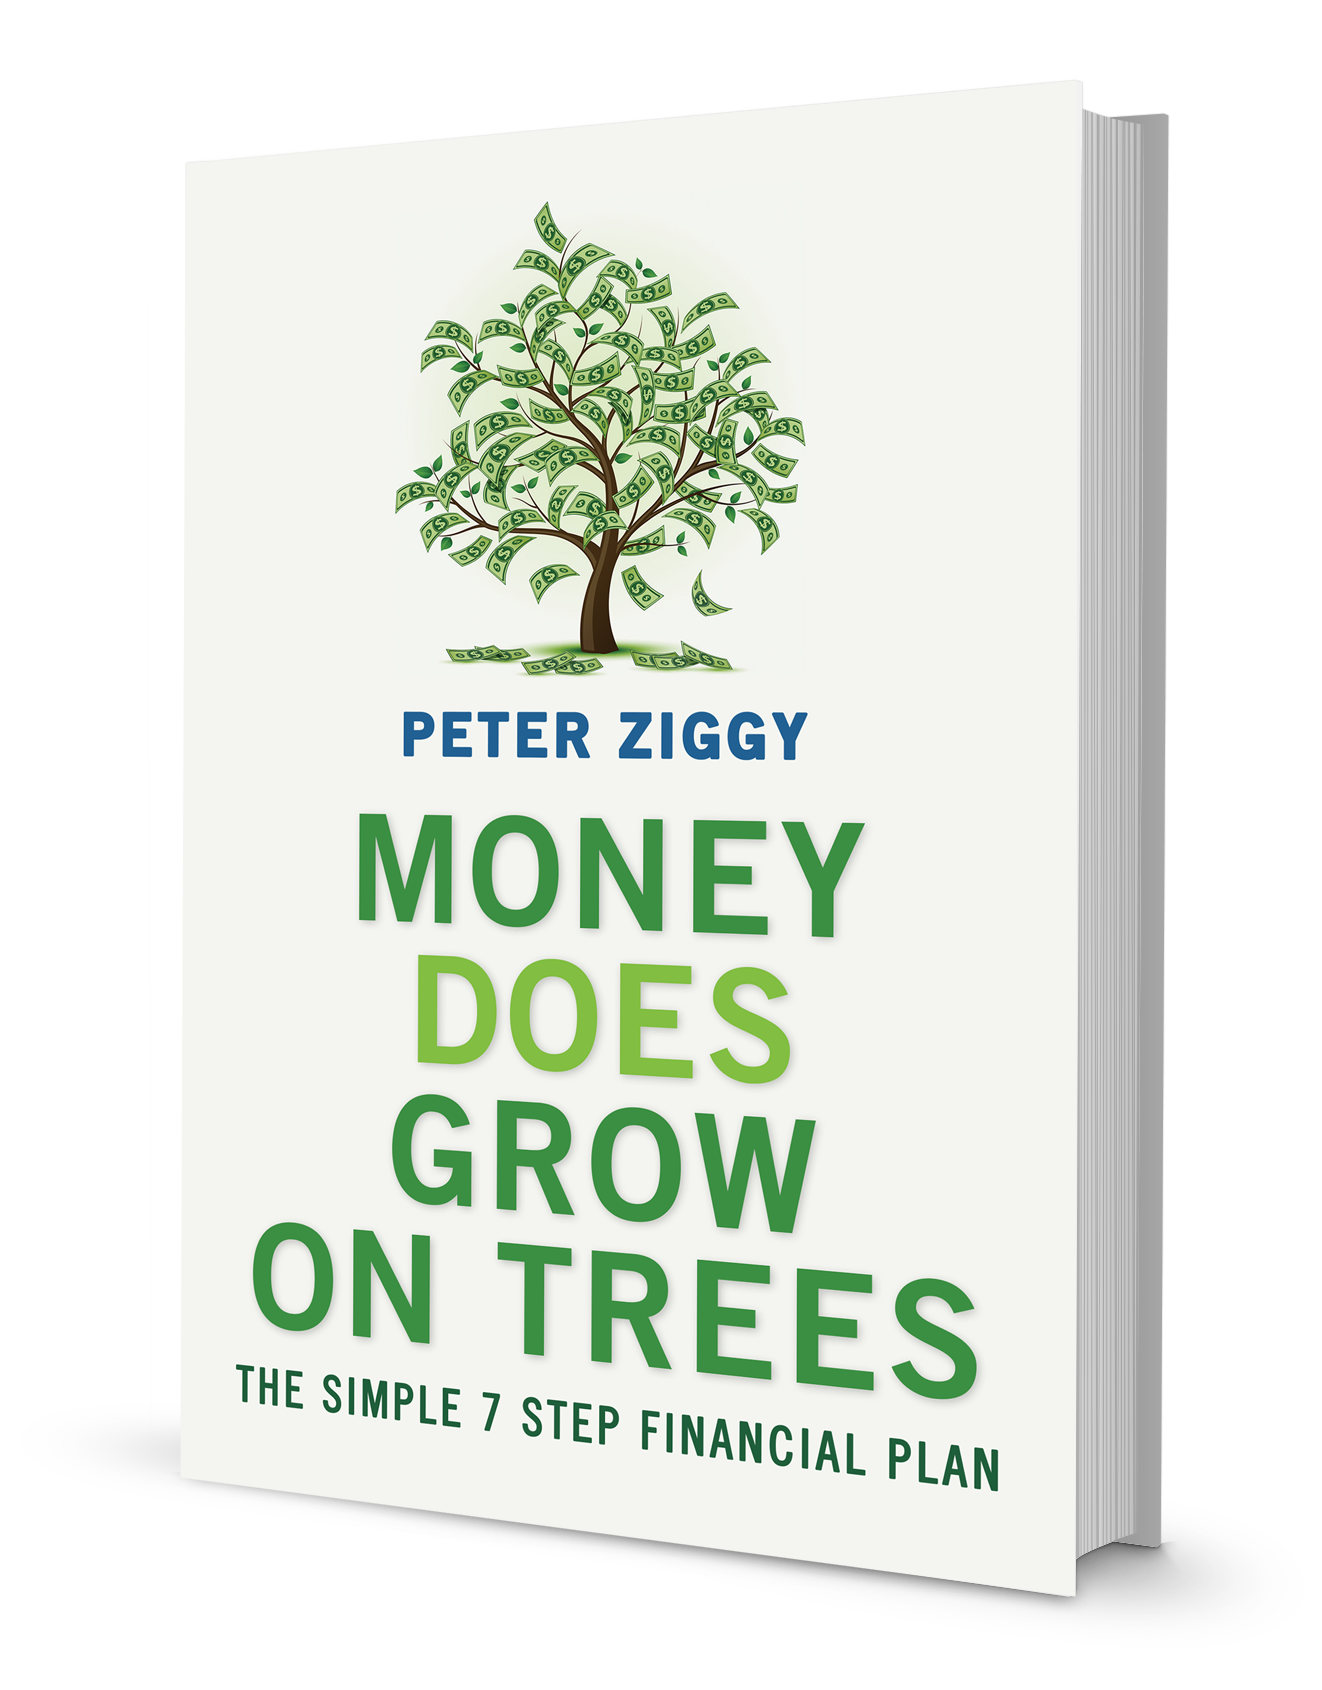 Money Does Grow On Trees By Peter Ziggy